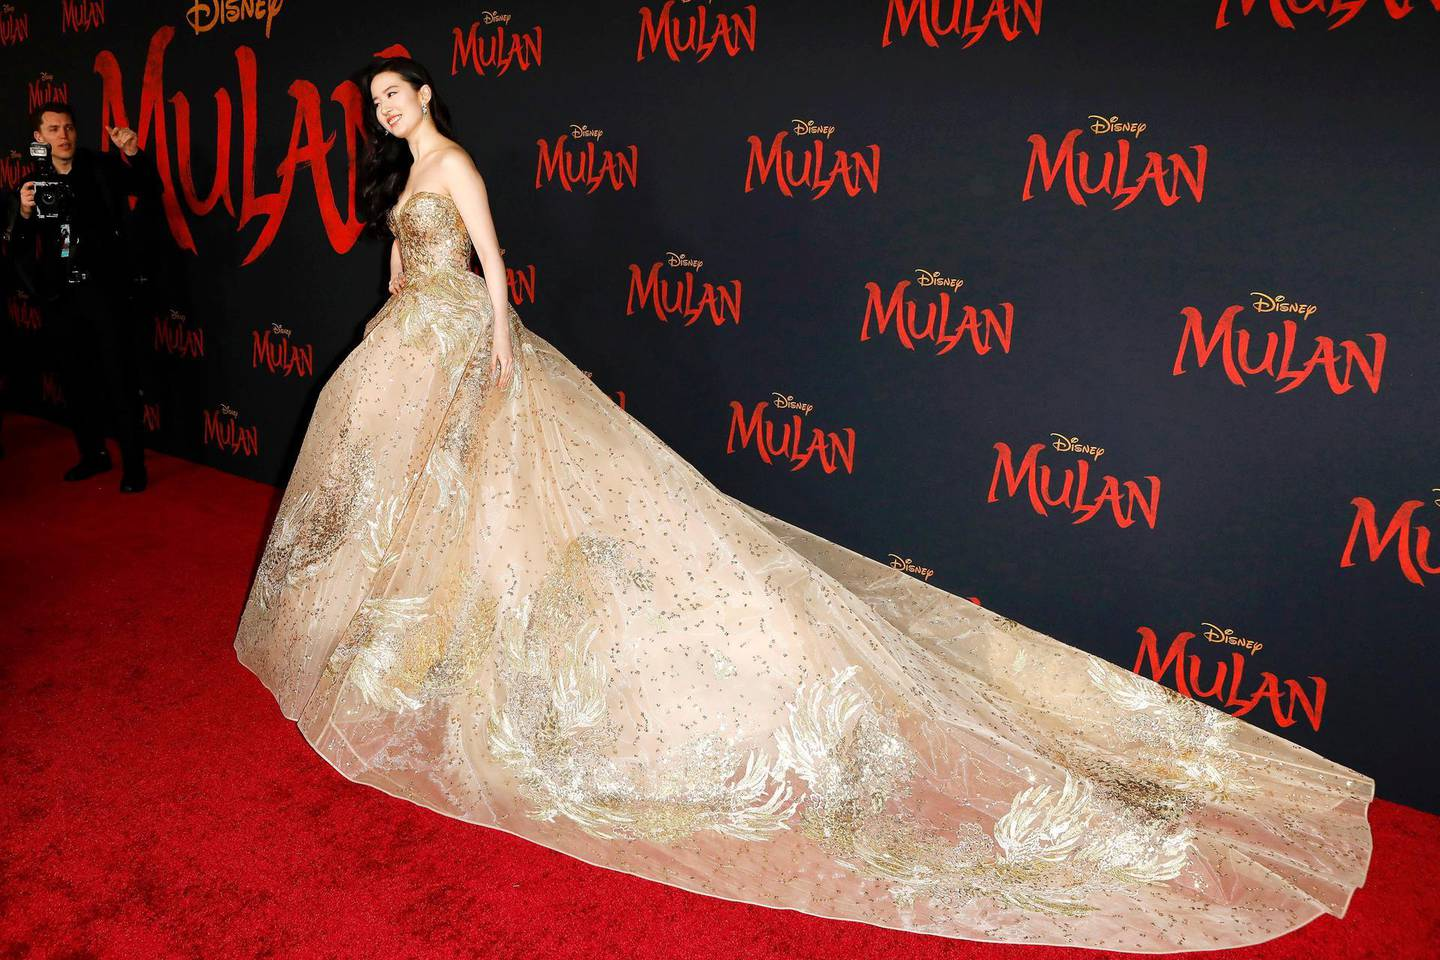 epa08282778 Chinese-American actress Liu Yifei wears an Elie Saab gown as she arrives for the world premiere of the movie 'Mulan' at the Dolby Theatre in Hollywood, Los Angeles, California, USA, 09 March 2020. The movie opens in theatres in the USA on 27 March 2020.  EPA/NINA PROMMER